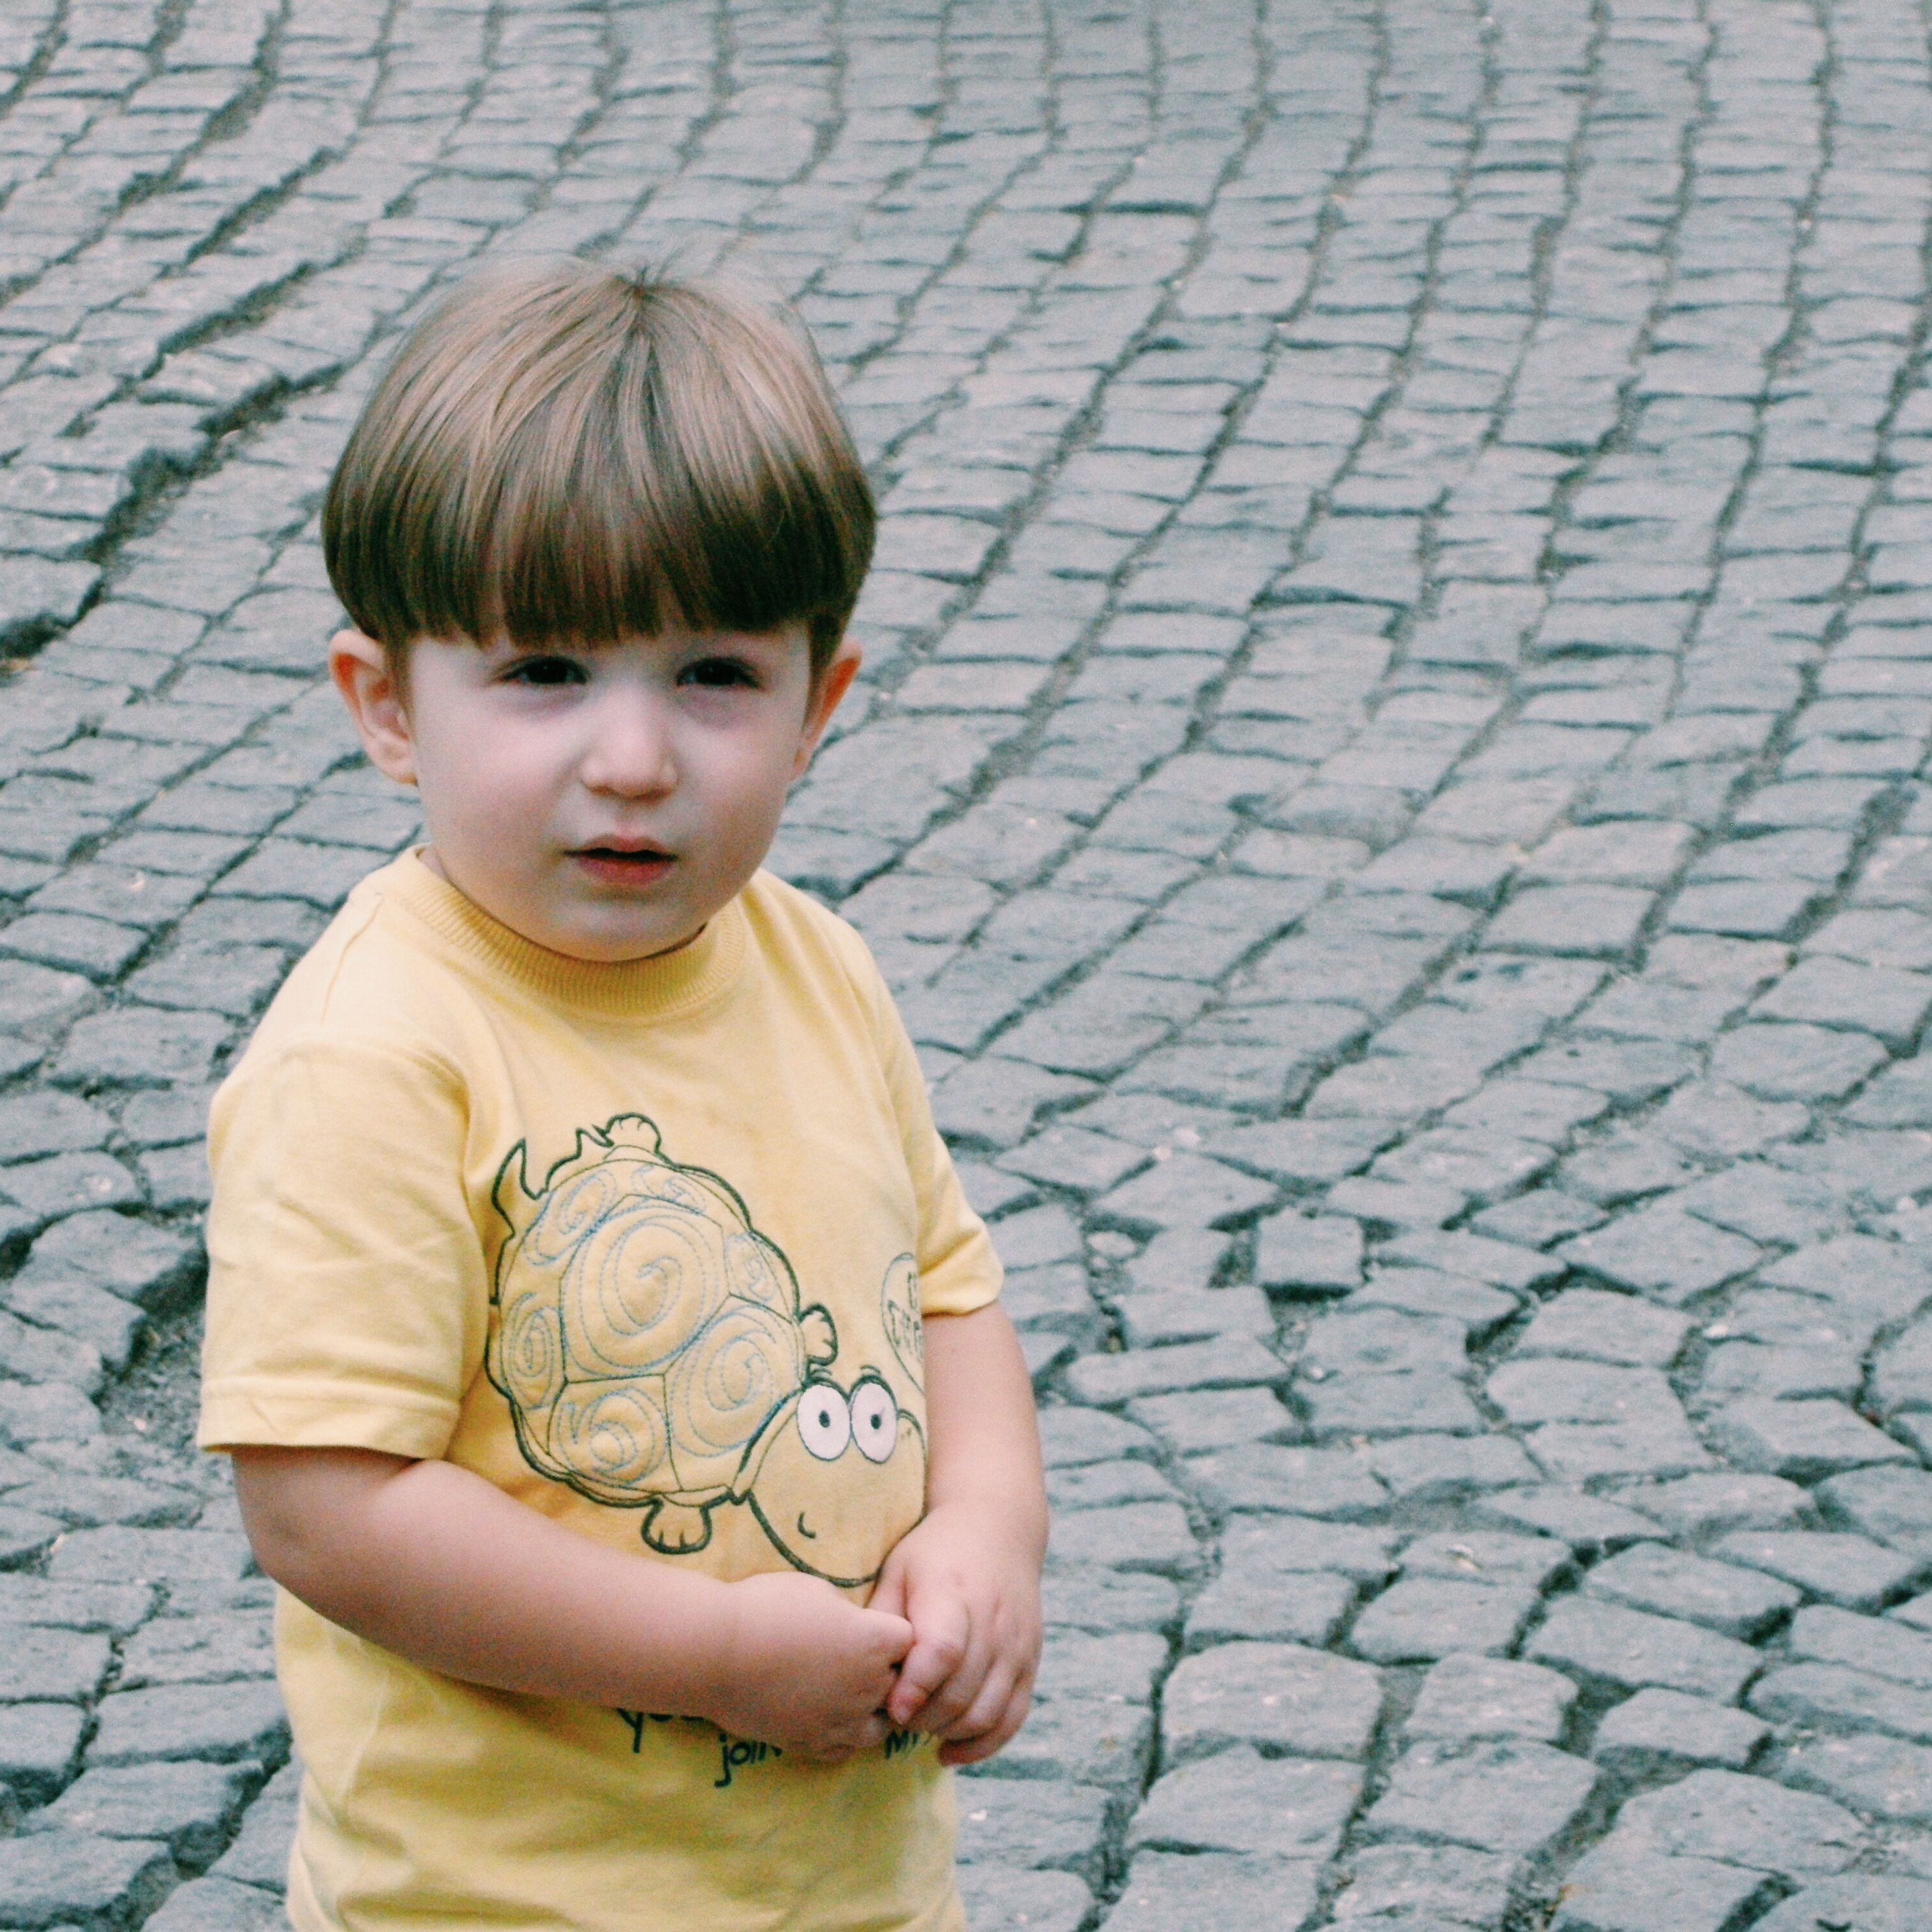 lifestyles, person, leisure activity, casual clothing, childhood, portrait, front view, looking at camera, standing, street, elementary age, boys, smiling, cobblestone, outdoors, happiness, footpath, day